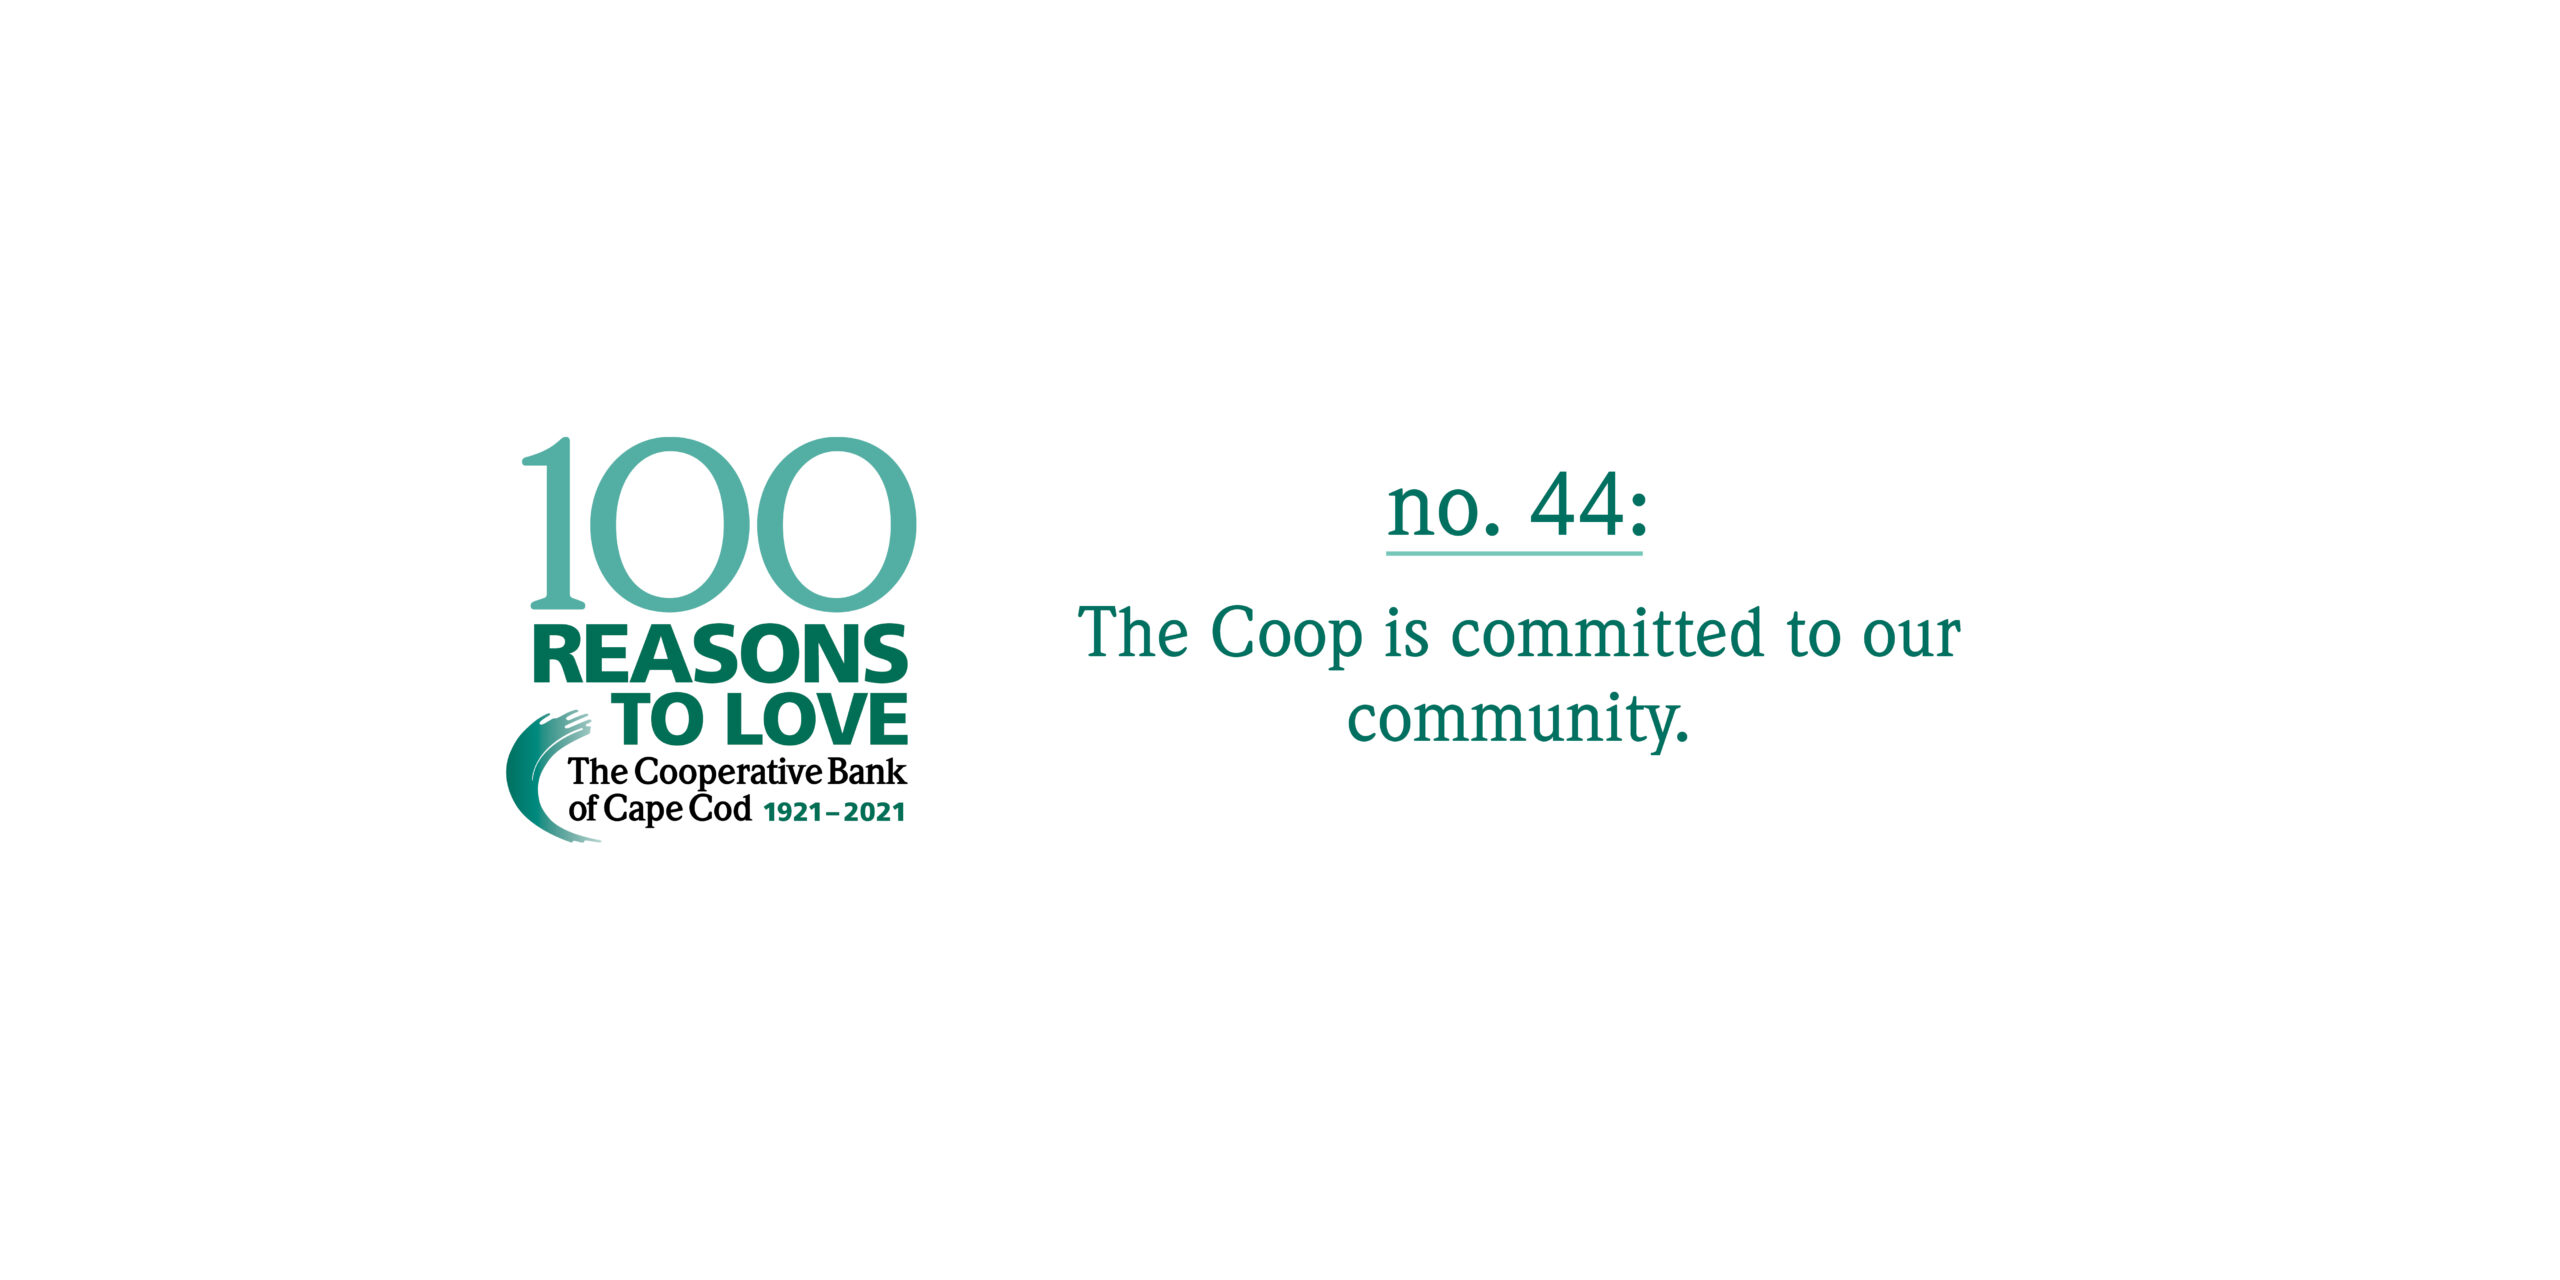 100 Reasons to Love The Coop - Reason #44: The Coop is committed to our community.